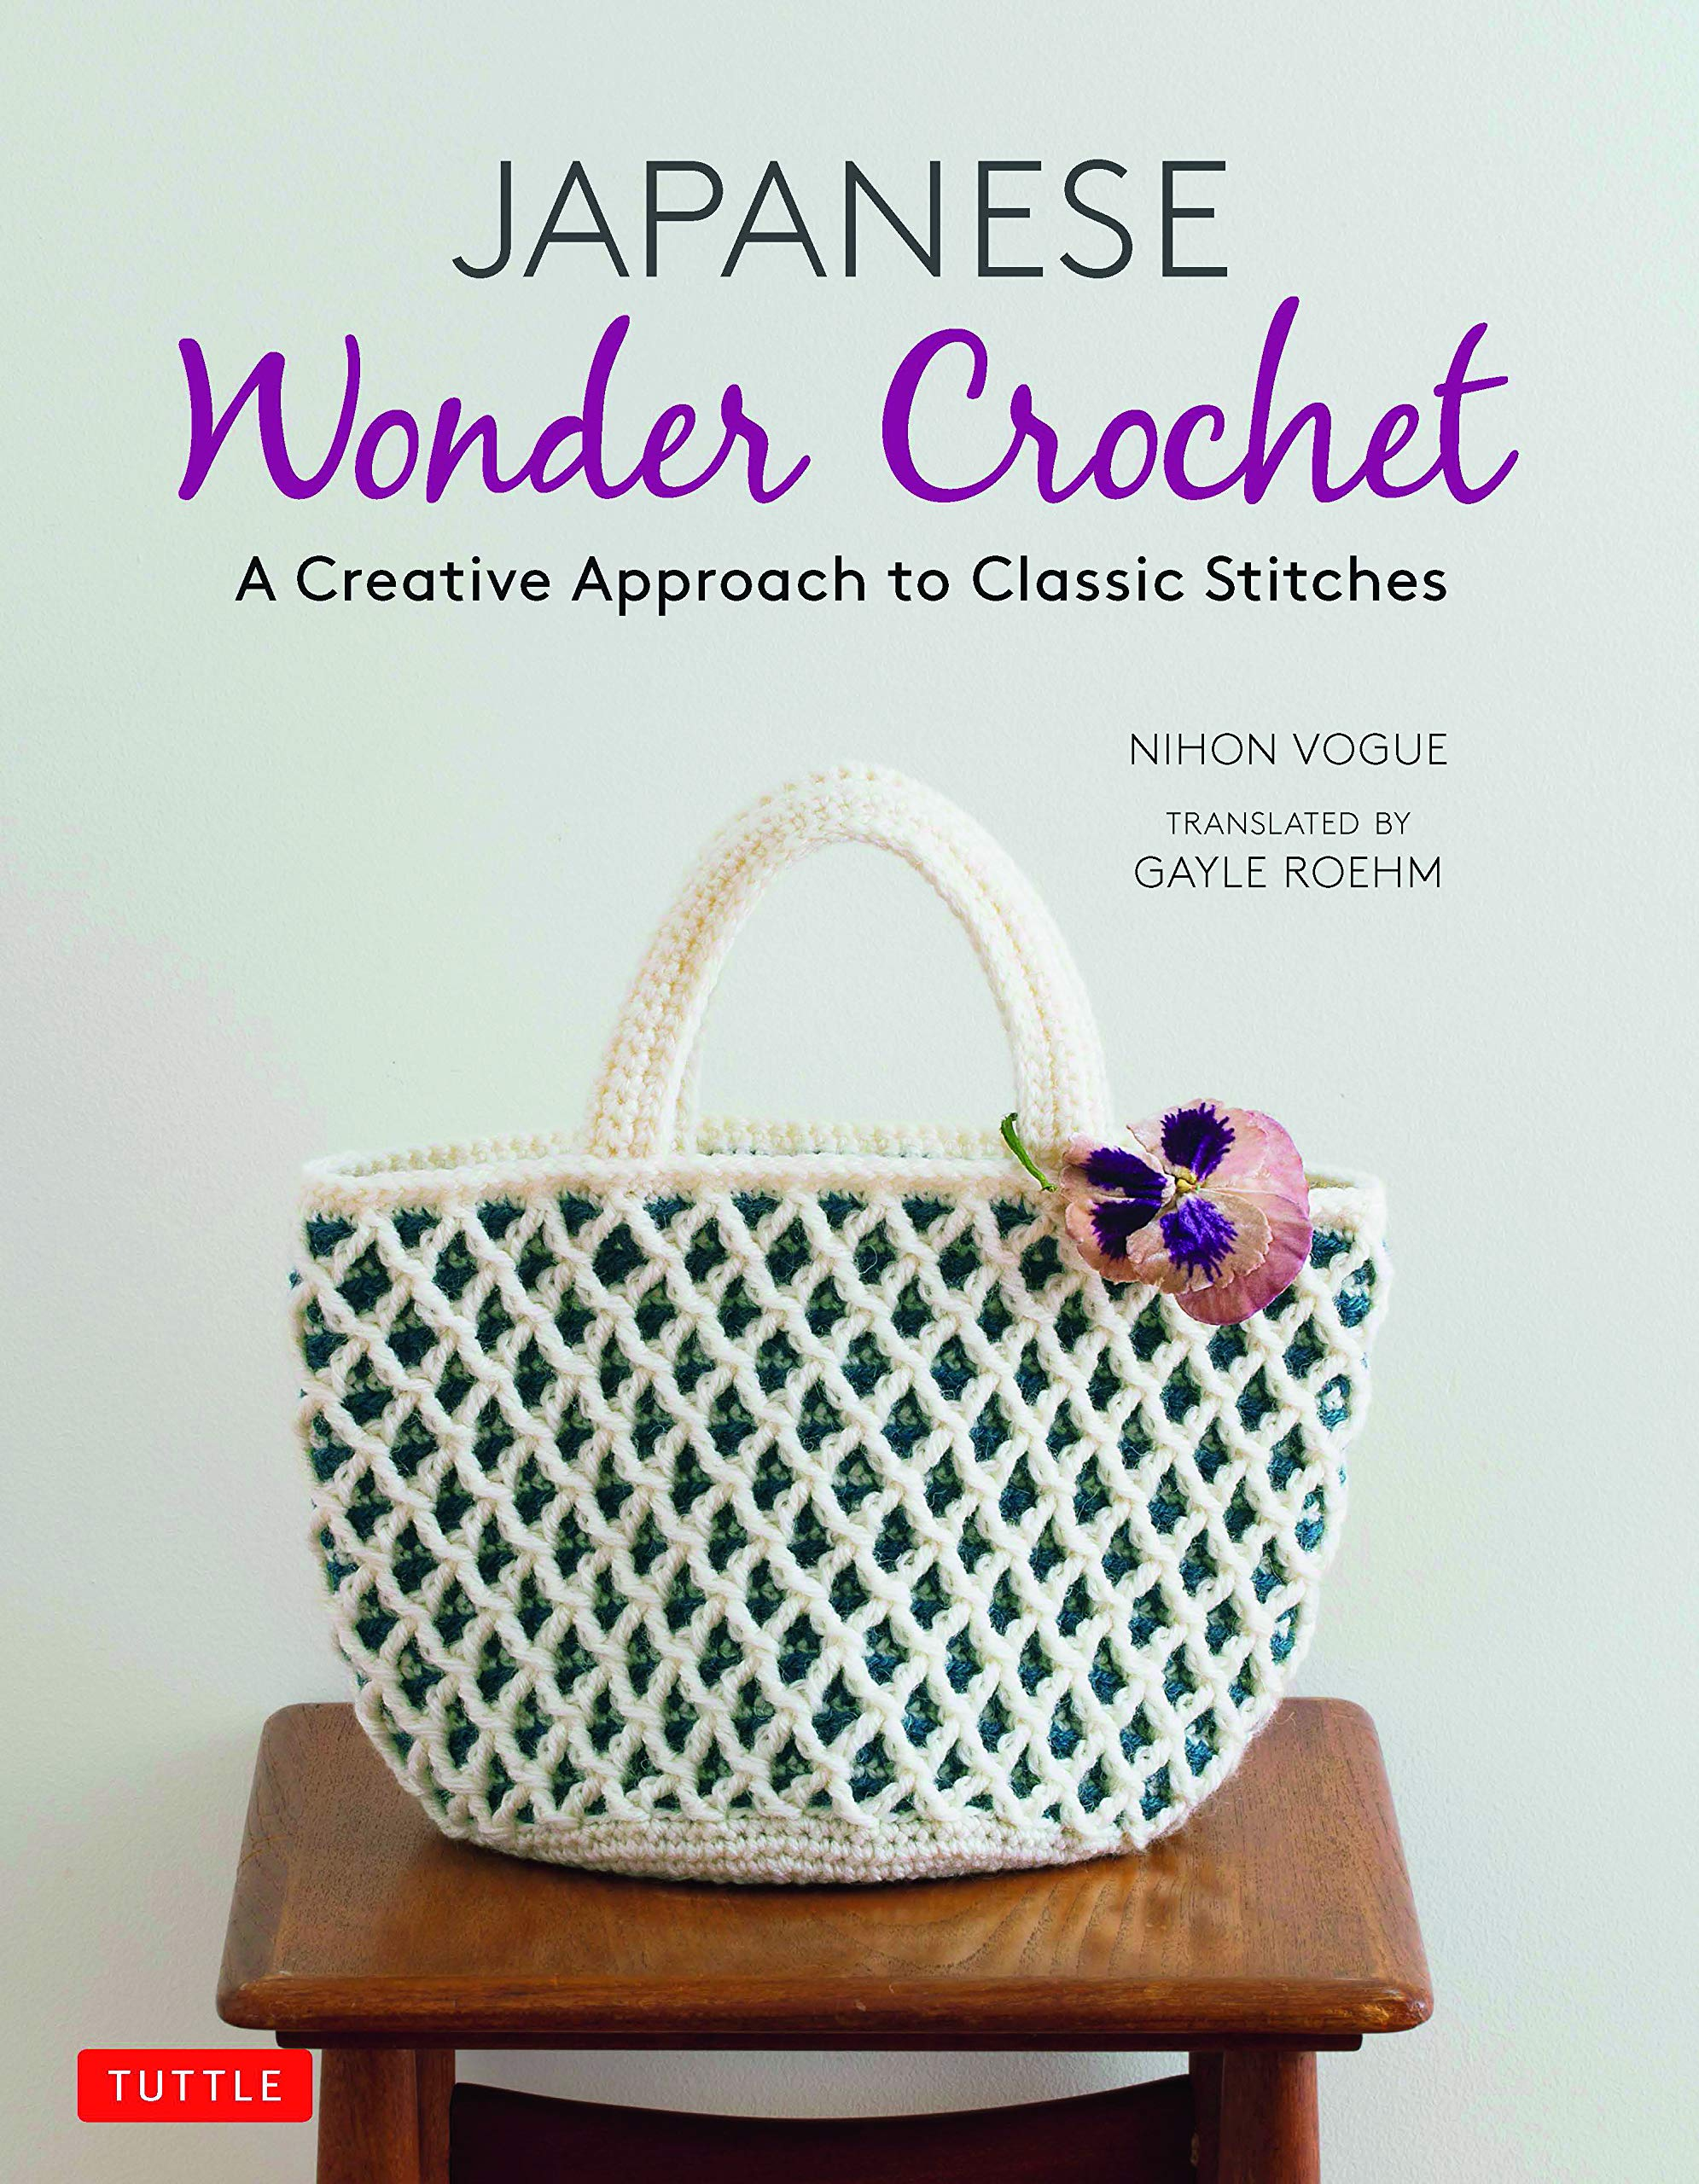 Nihon Vogue: Japanese Wonder Crochet: A Creative Approach to Classic Stitches: Amazon.es: Vogue, Nihon, Roehm, Gayle: Libros en idiomas extranjeros